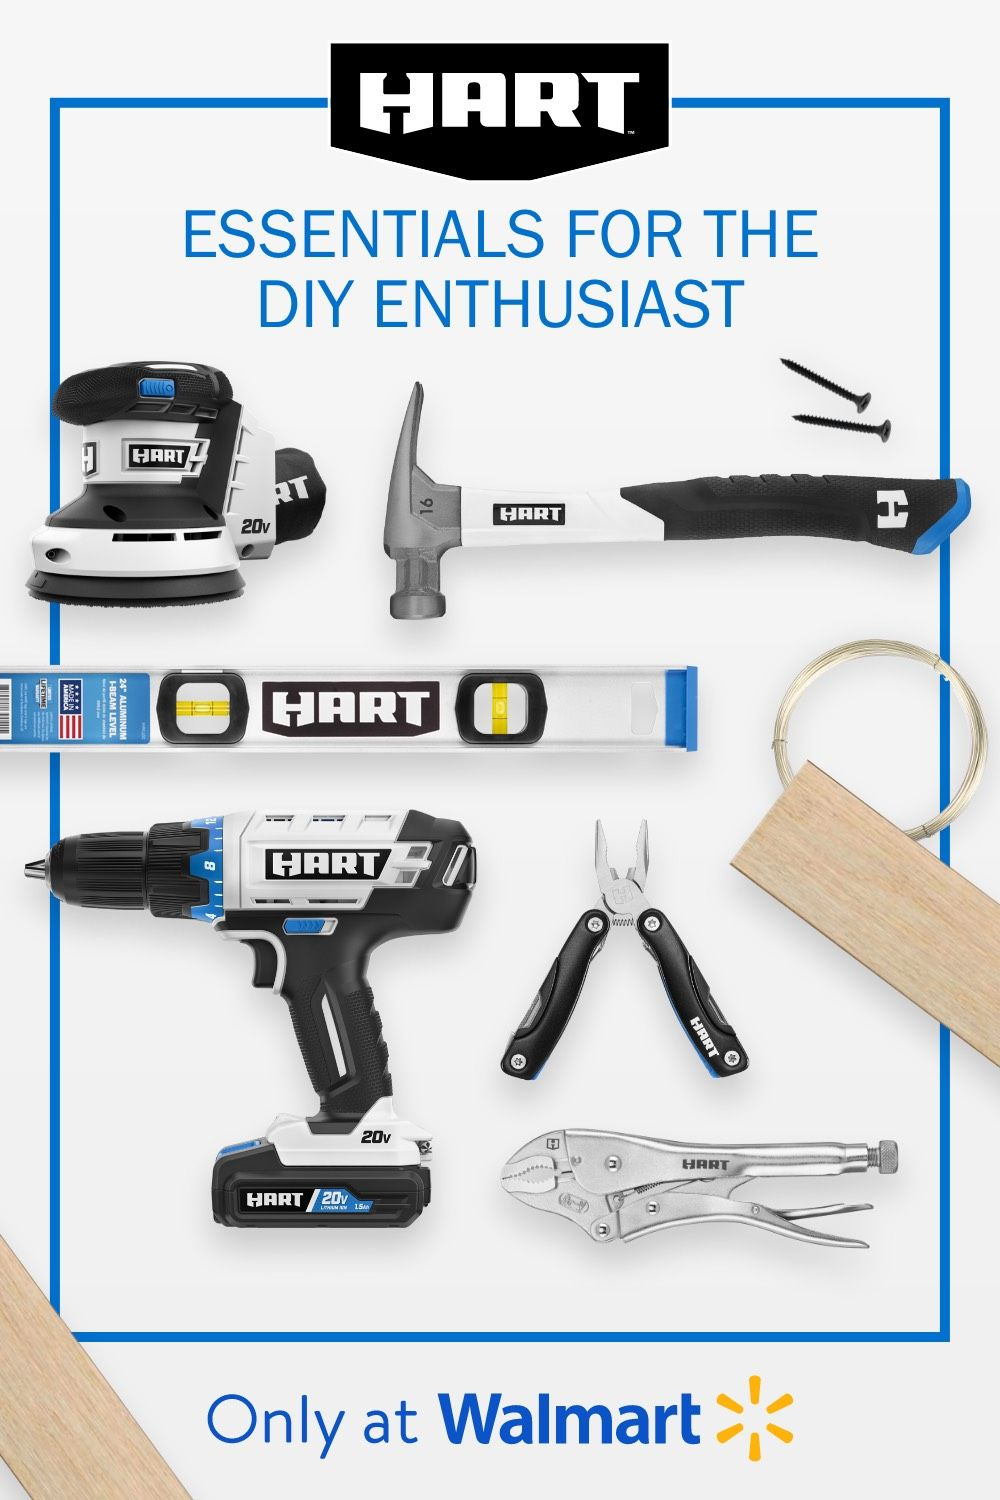 Before tackling a household project, make sure you have the right tools.